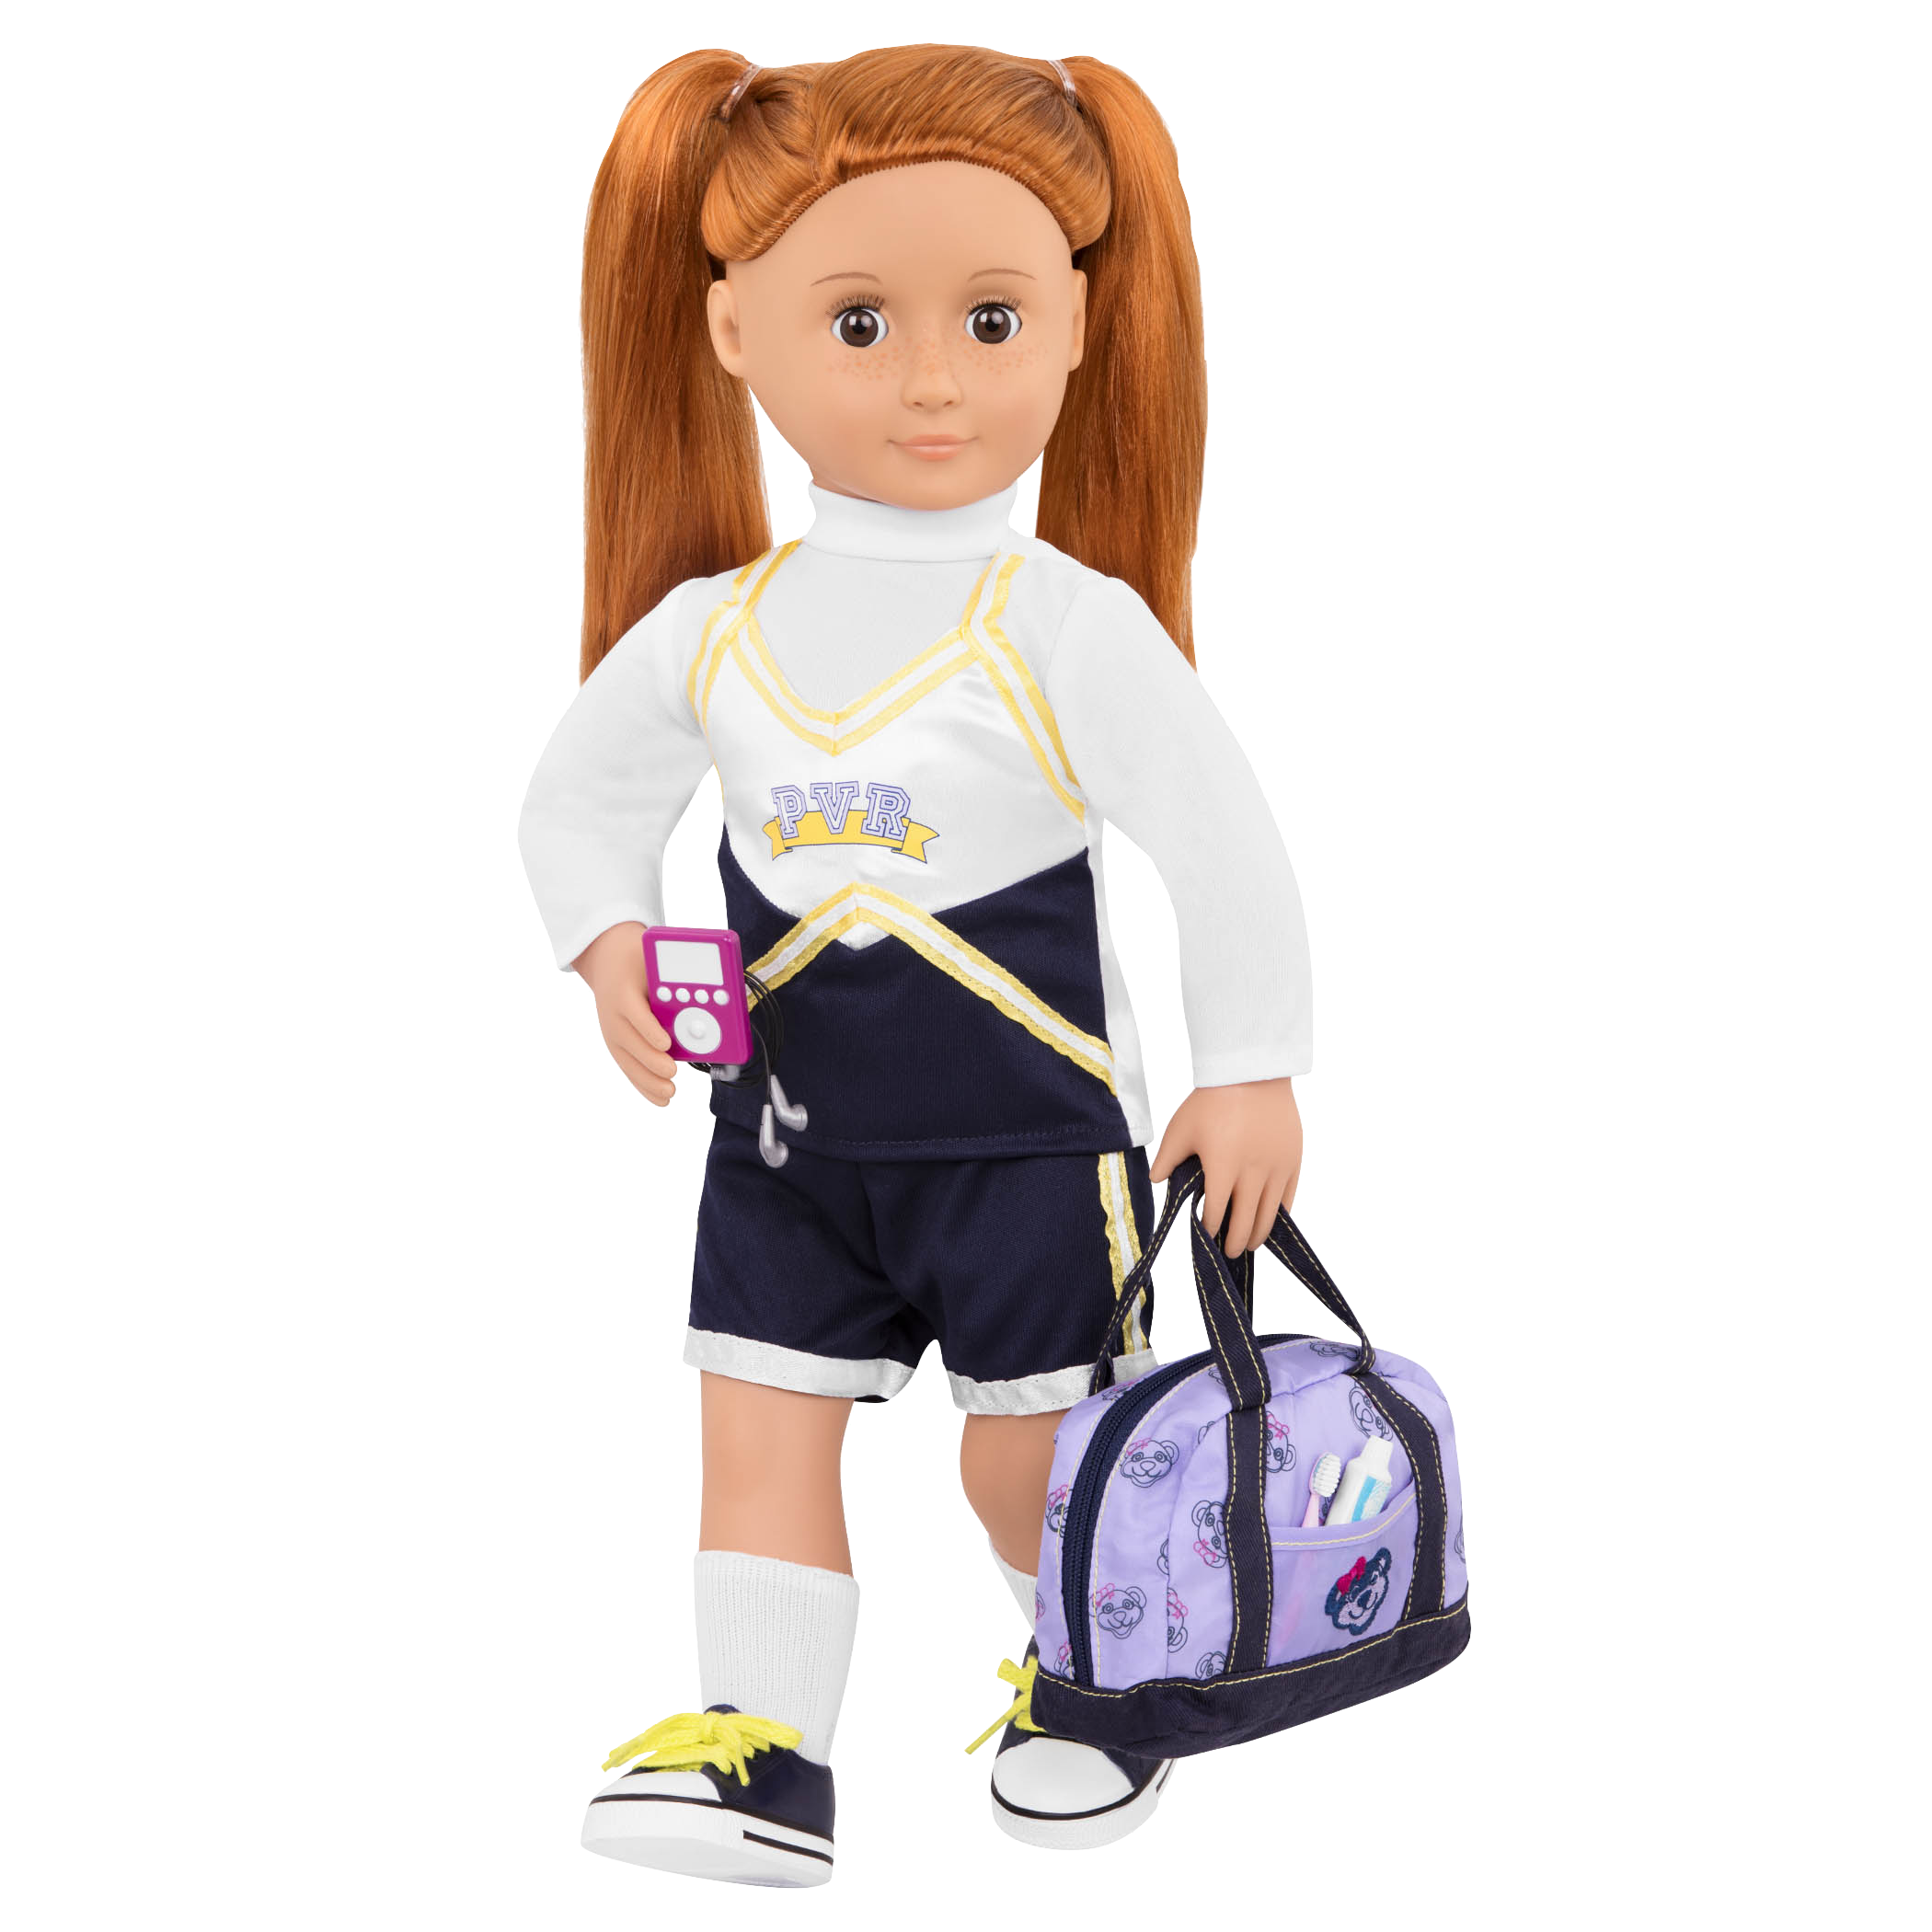 Cheerleader Camp Set Noa doll holding baG